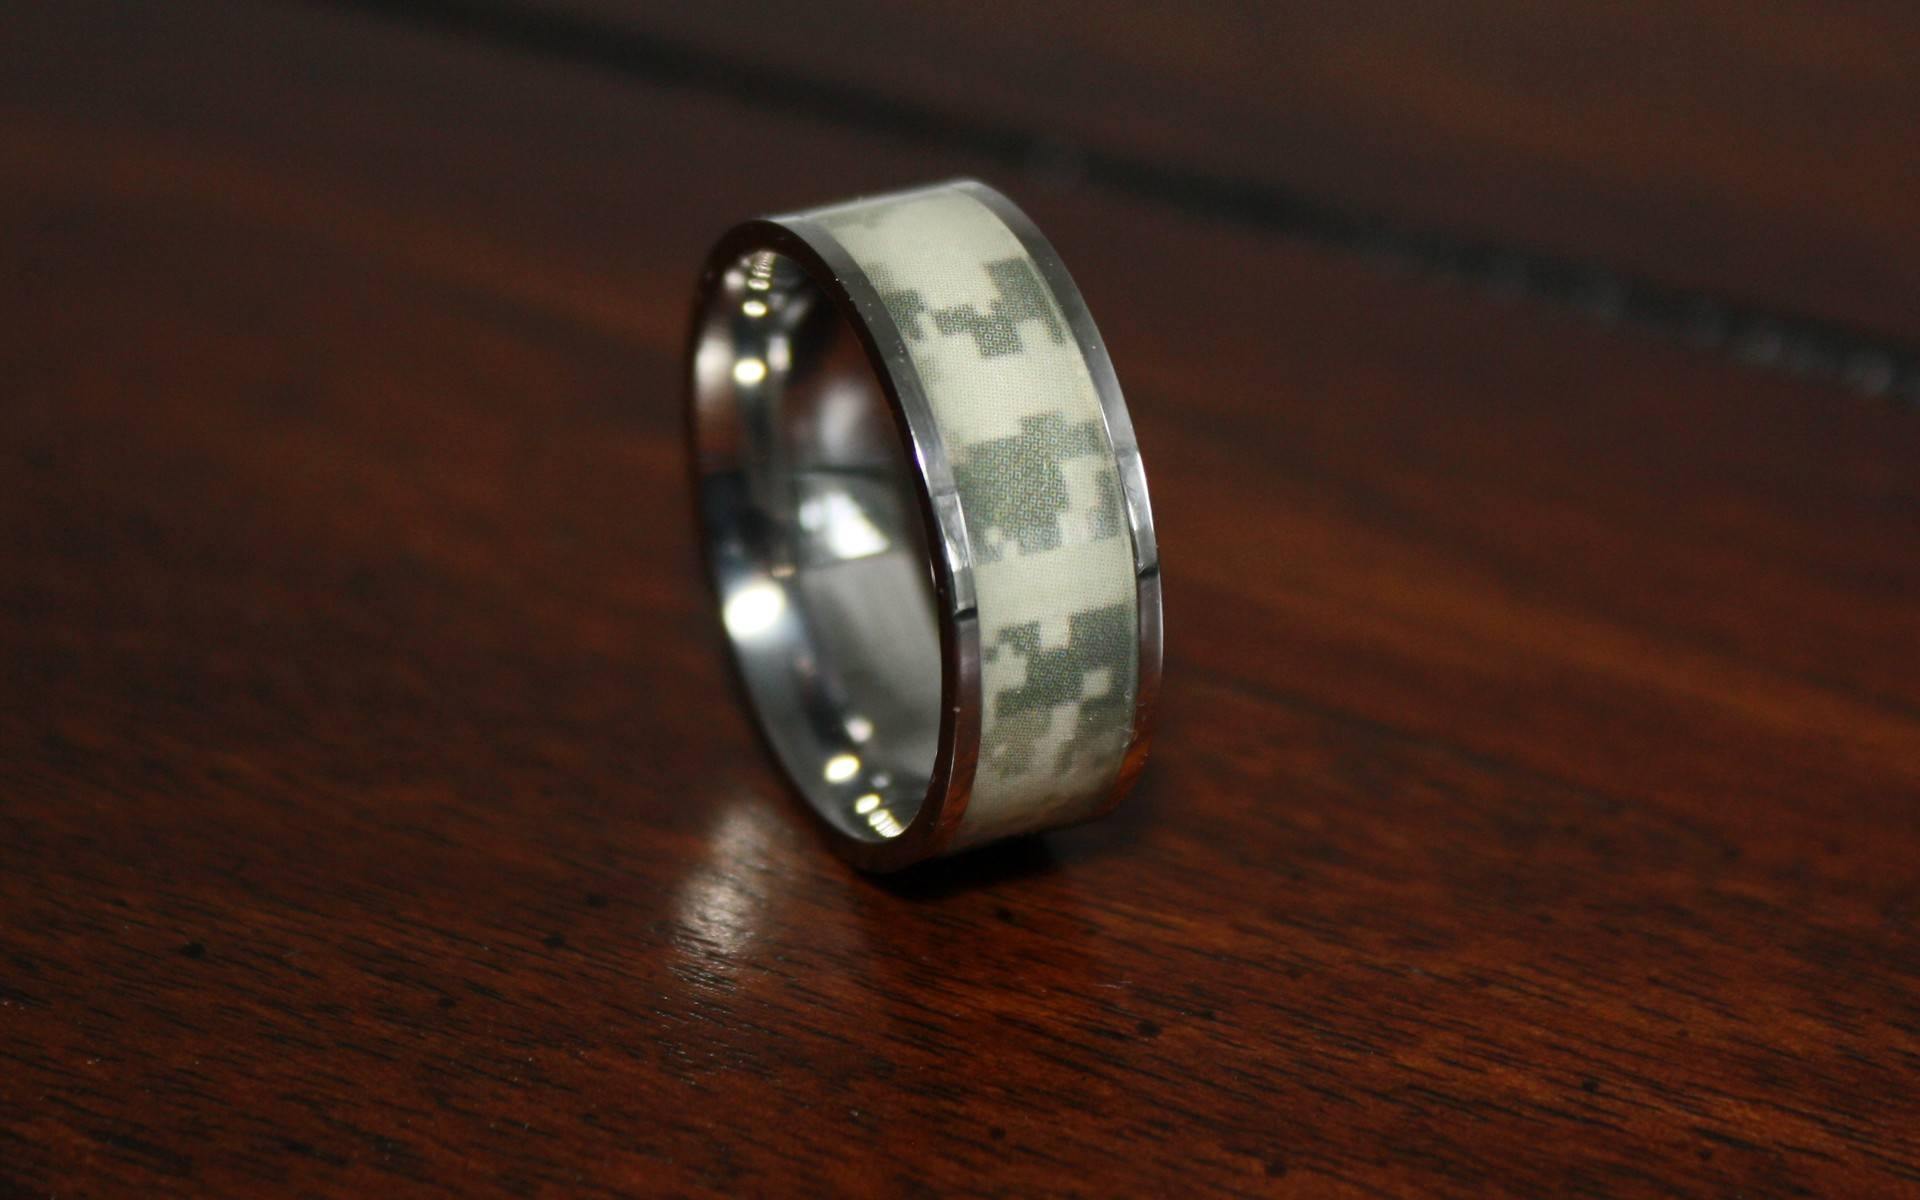 Decorative Duck Hunting Wedding Band Halloween Ideas Duck Blind Intended For Duck Hunting Wedding Bands (View 5 of 15)